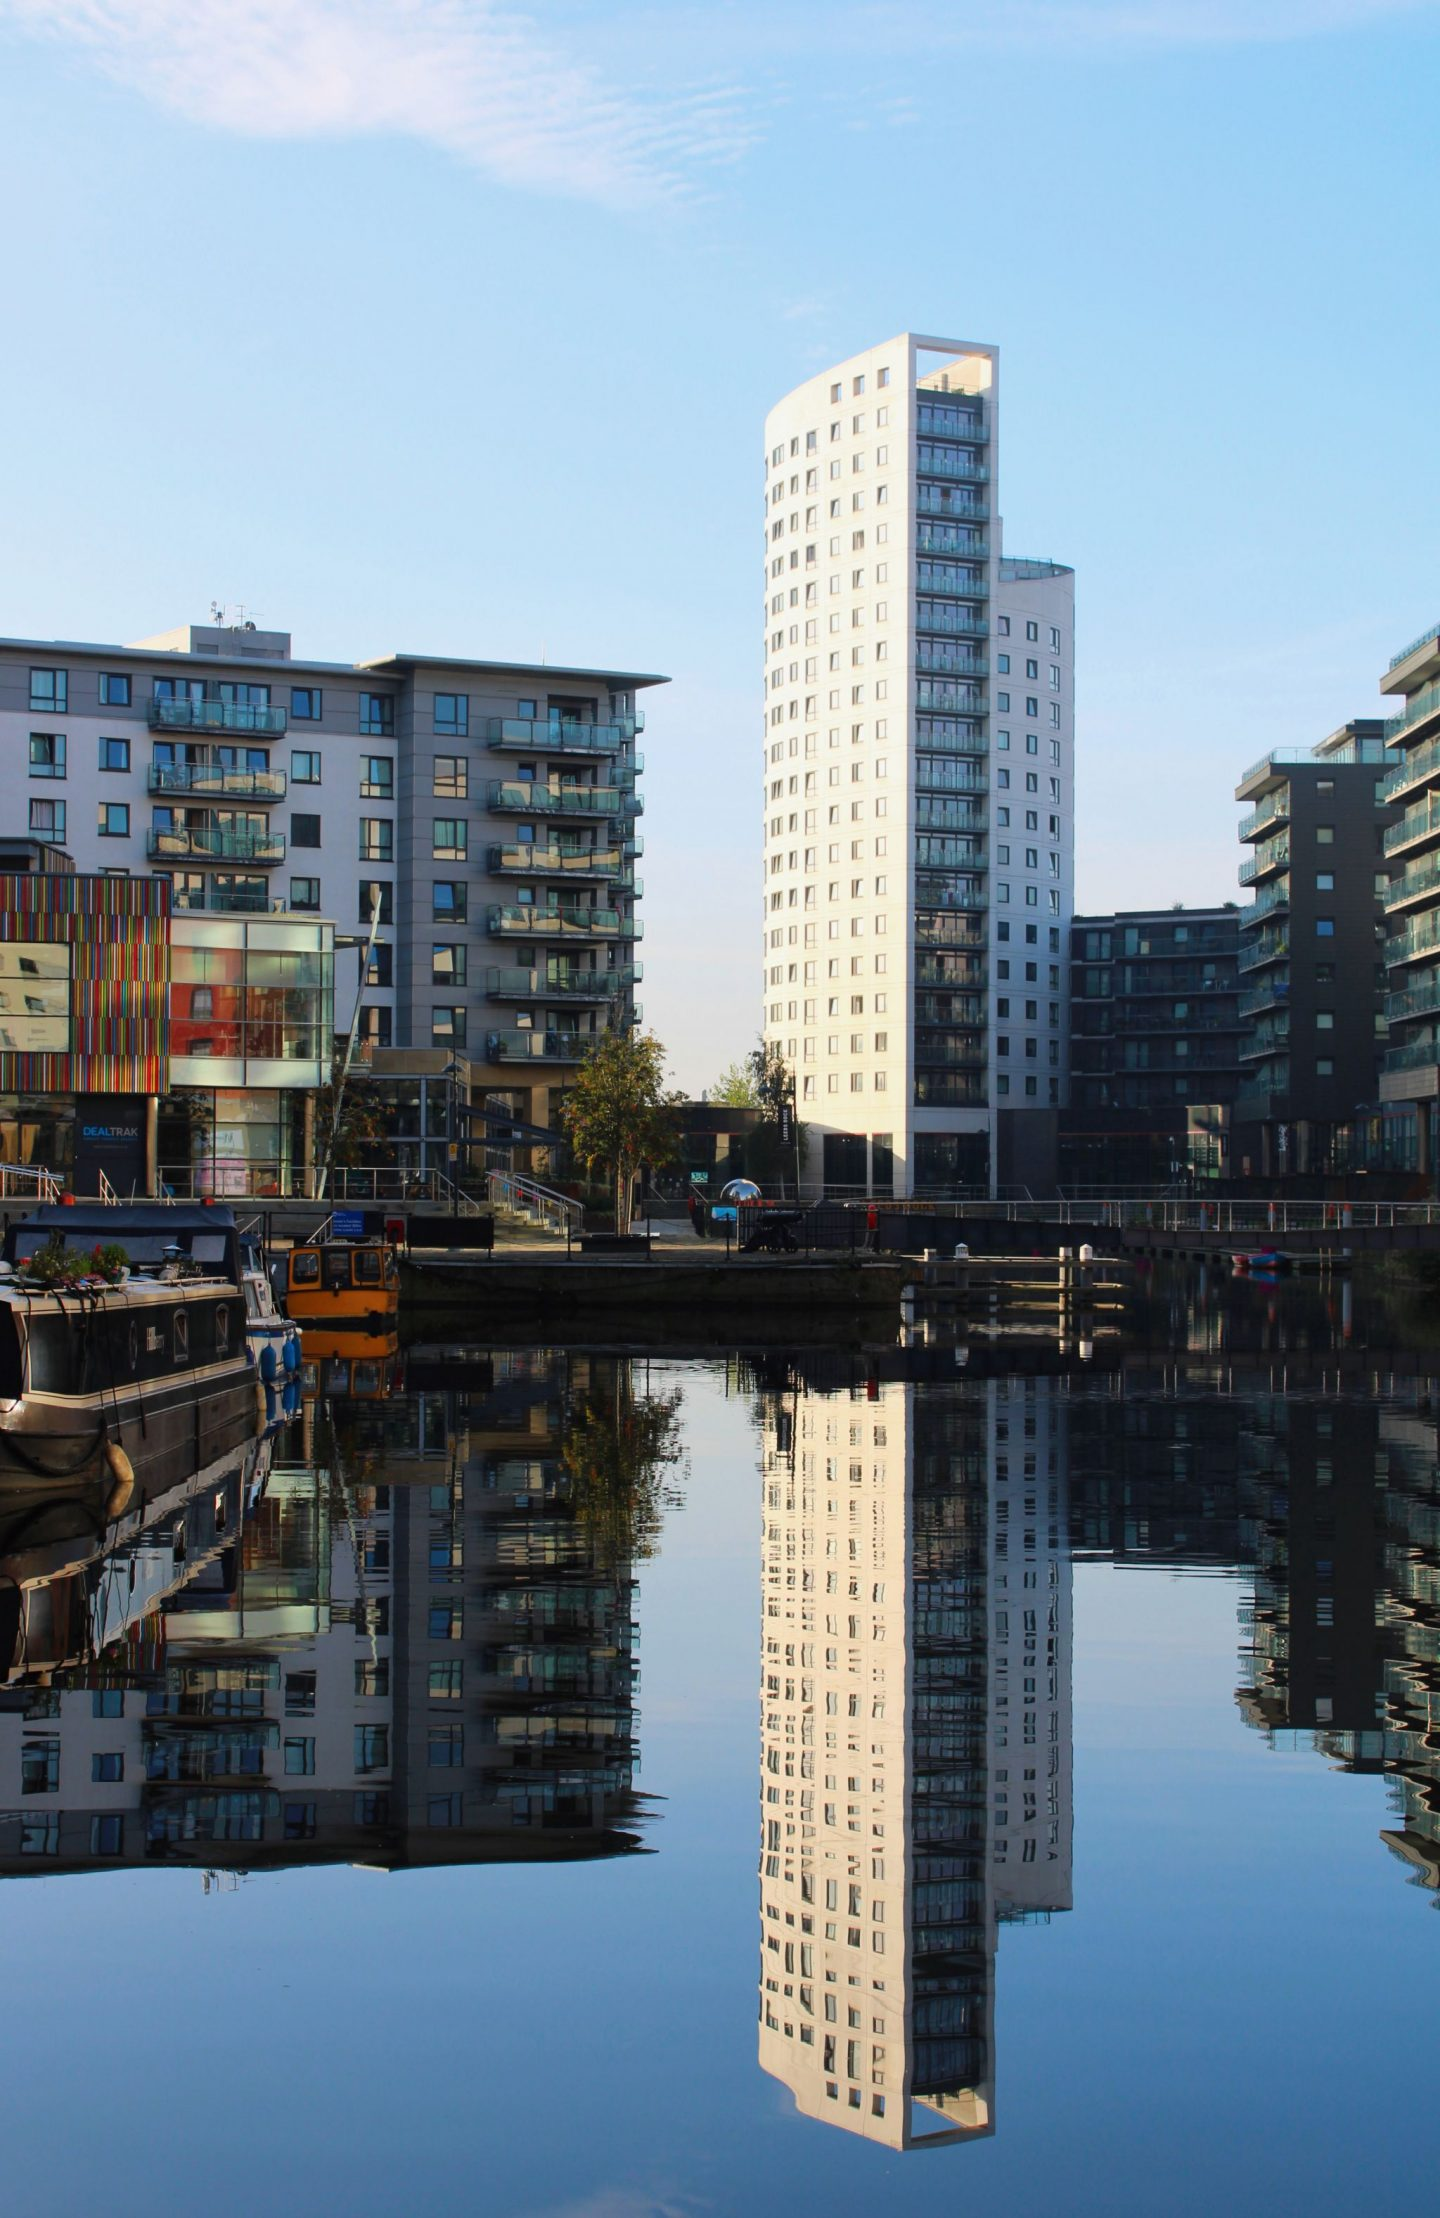 Things to do in Leeds: Leeds dock featuring a body of water and a water taxi